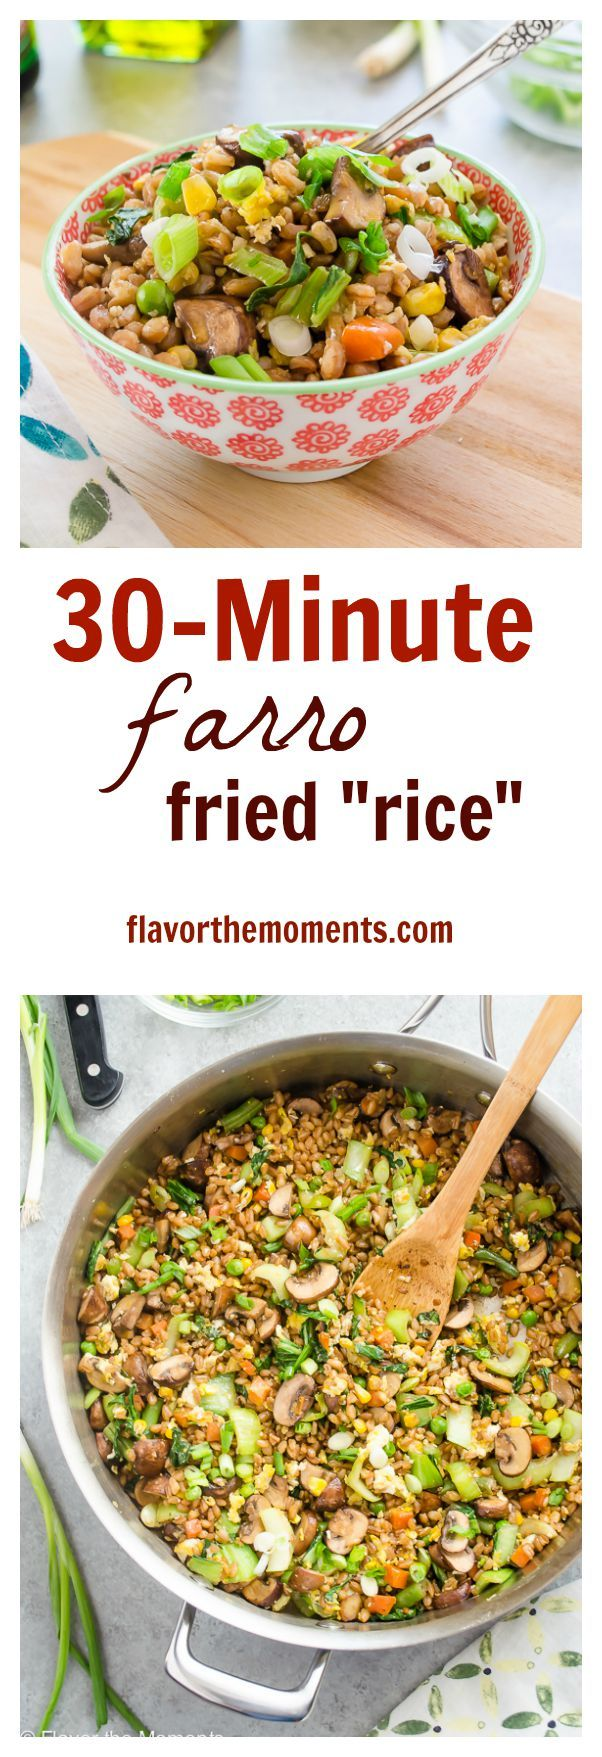 "30-Minute Farro Fried ""Rice"" 